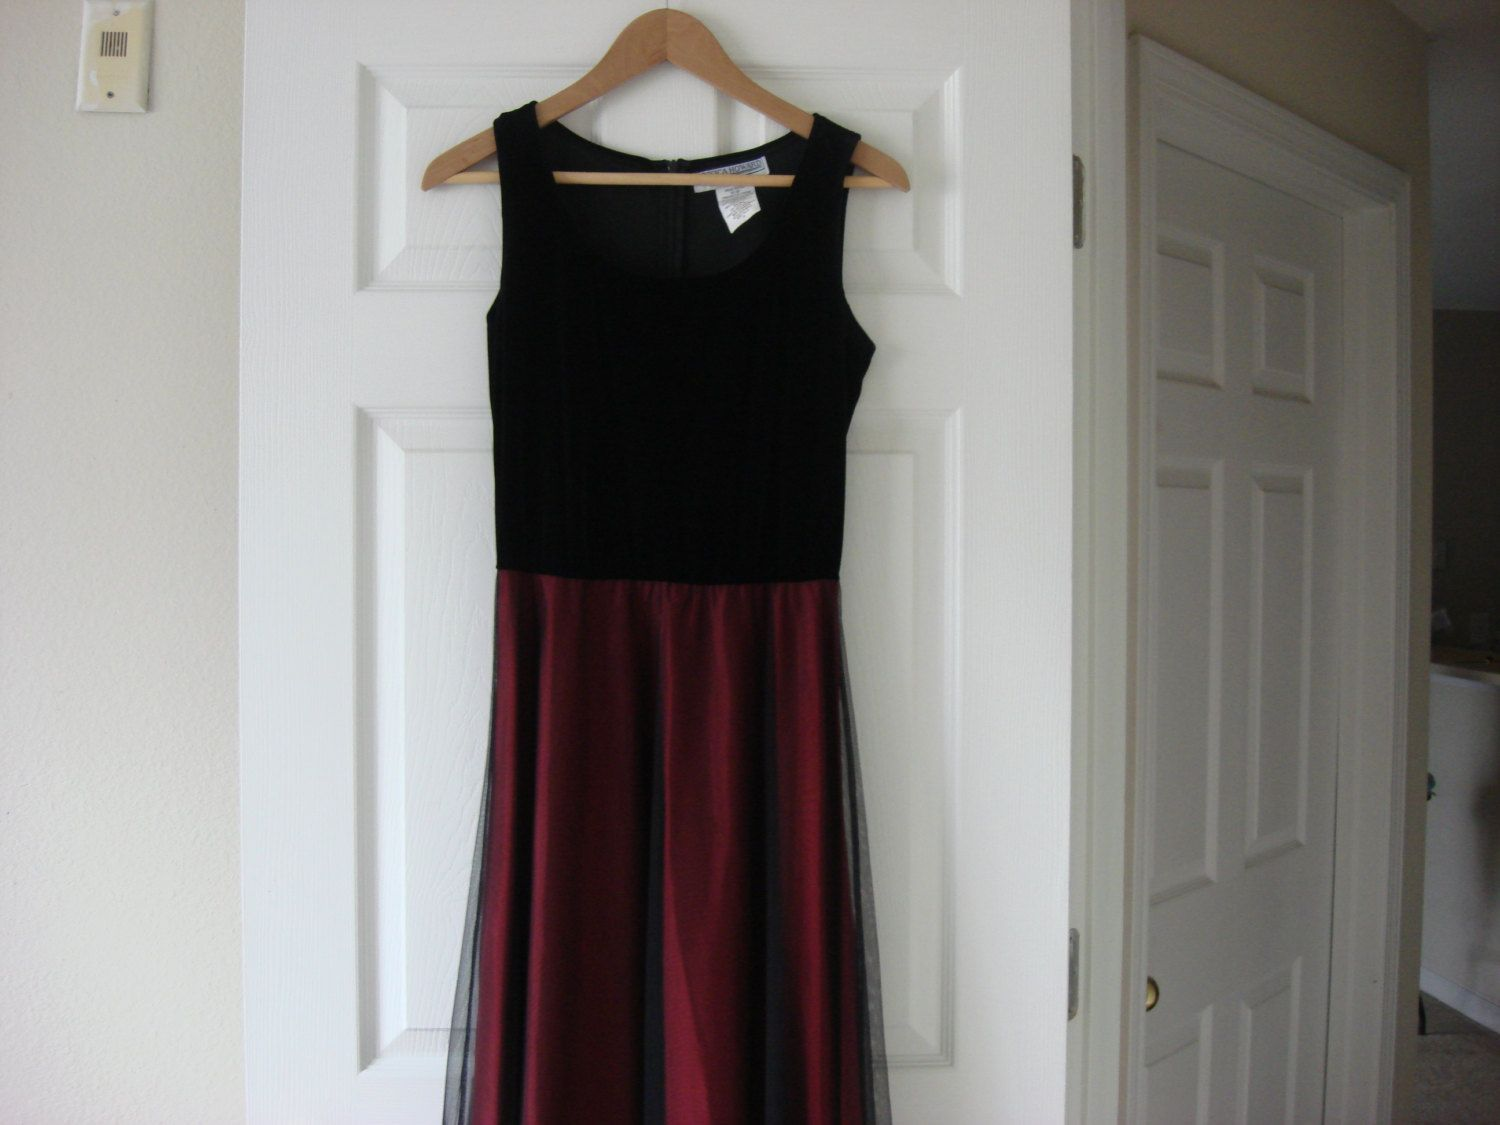 Beautiful Vintage Black Velvet and Red Black Tulle Long Dress Sleeveless Size 8 Medium by fleurzart on Etsy